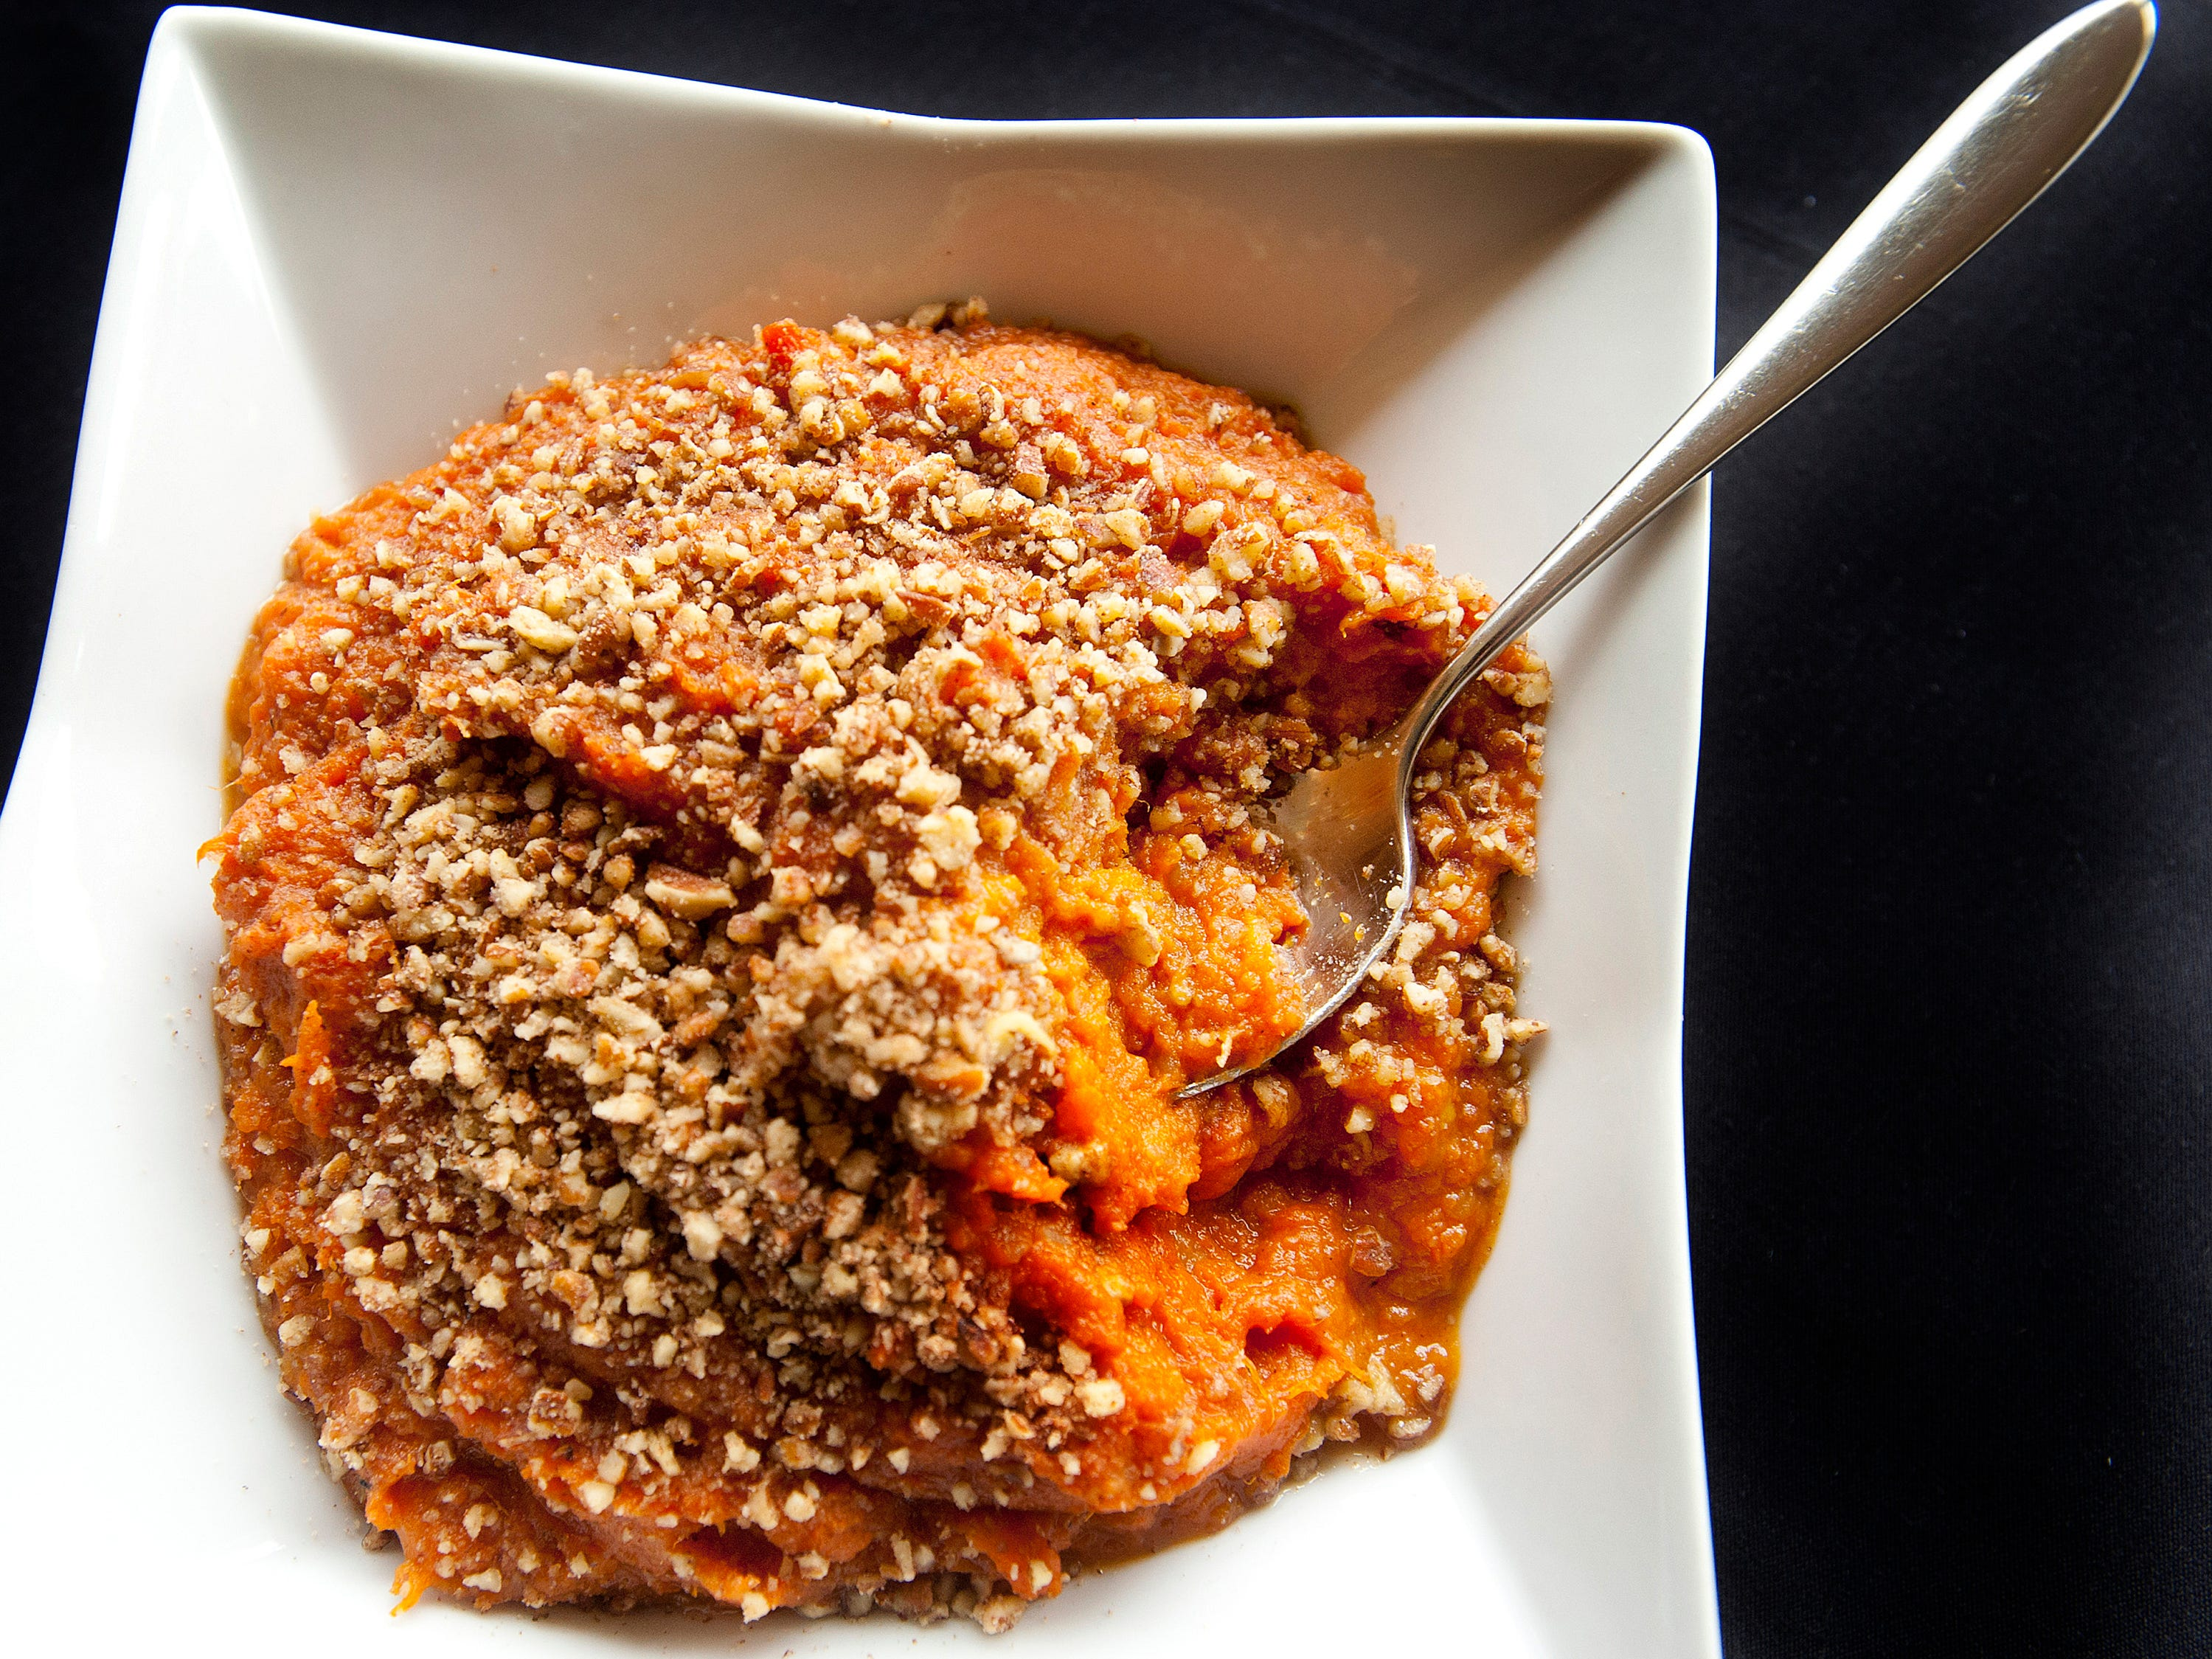 Varanese restaurant owner and executive chef John Varanese's Amaretto Sweet Potato Casserole is made with sweet potatoes flavored with Amaretto, white potatoes, butter, brown sugar, molasses, cinnamon and nutmeg. November 14, 2018